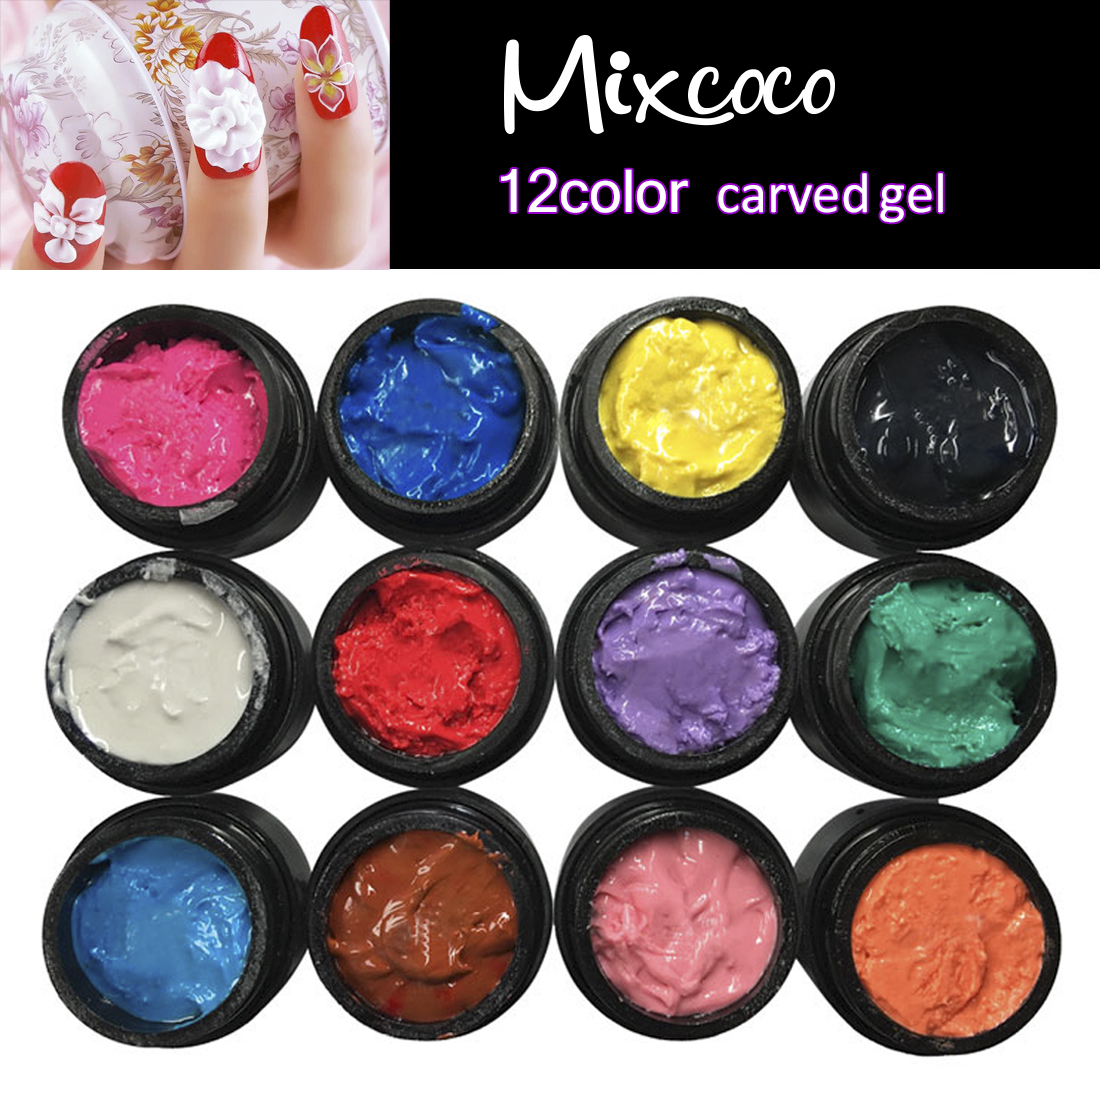 Become exclusive distributor Mixcoco carving gel paint 3d flower sculpture gel